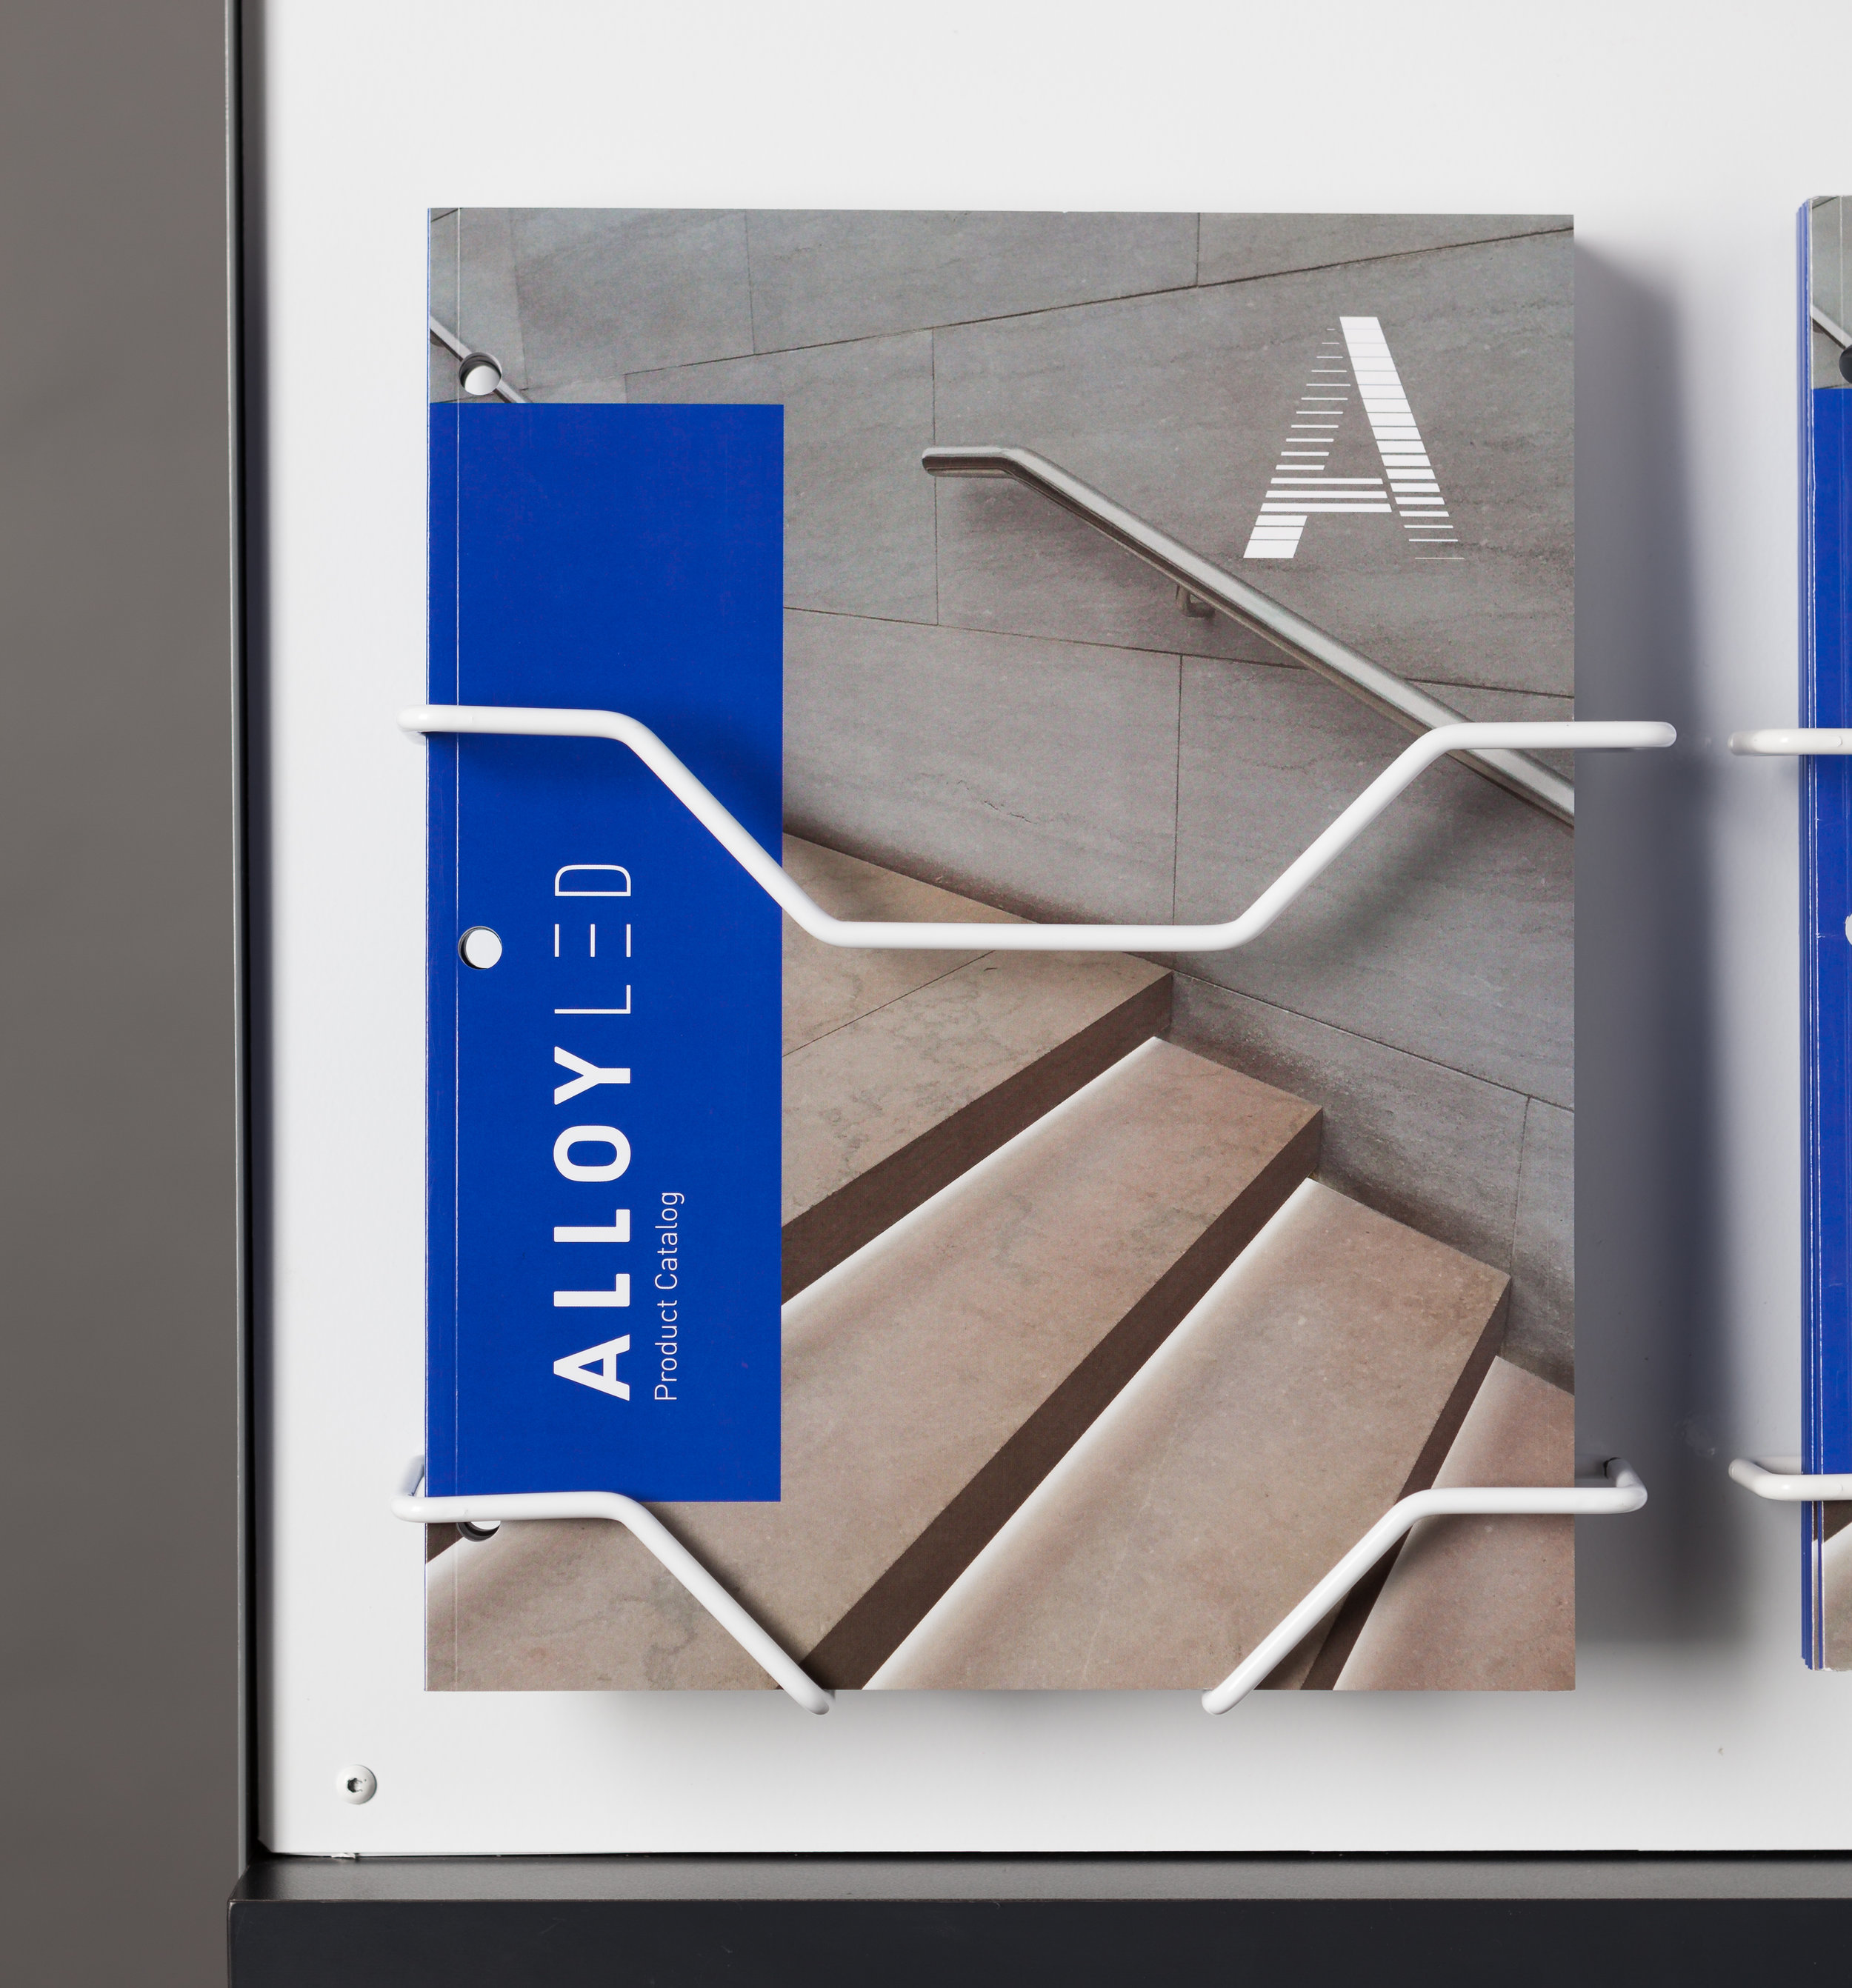 The custom wire brochure holder is modular to the display and also compatible with slat wall and peg wall environments.